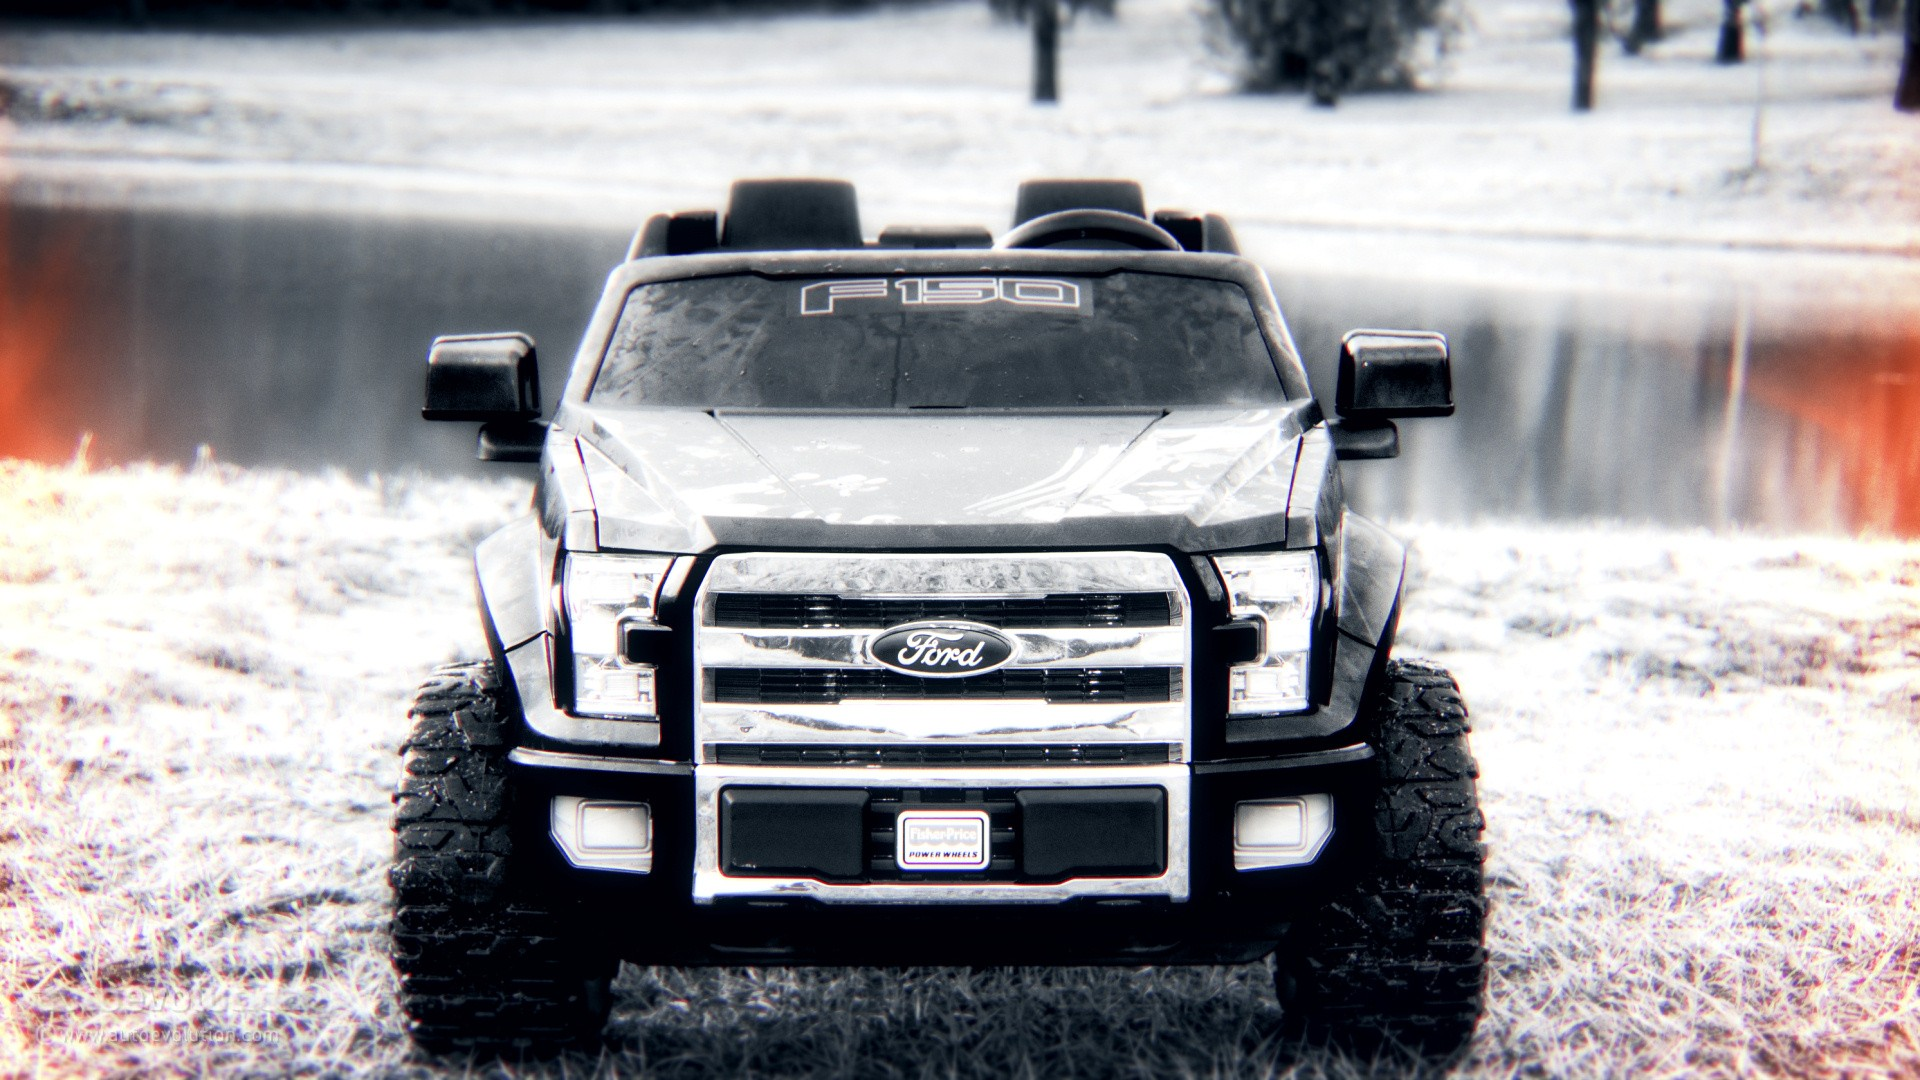 We Review the Power Wheels Ford F-150: The Best Kid Trucker Gift? - autoevolution